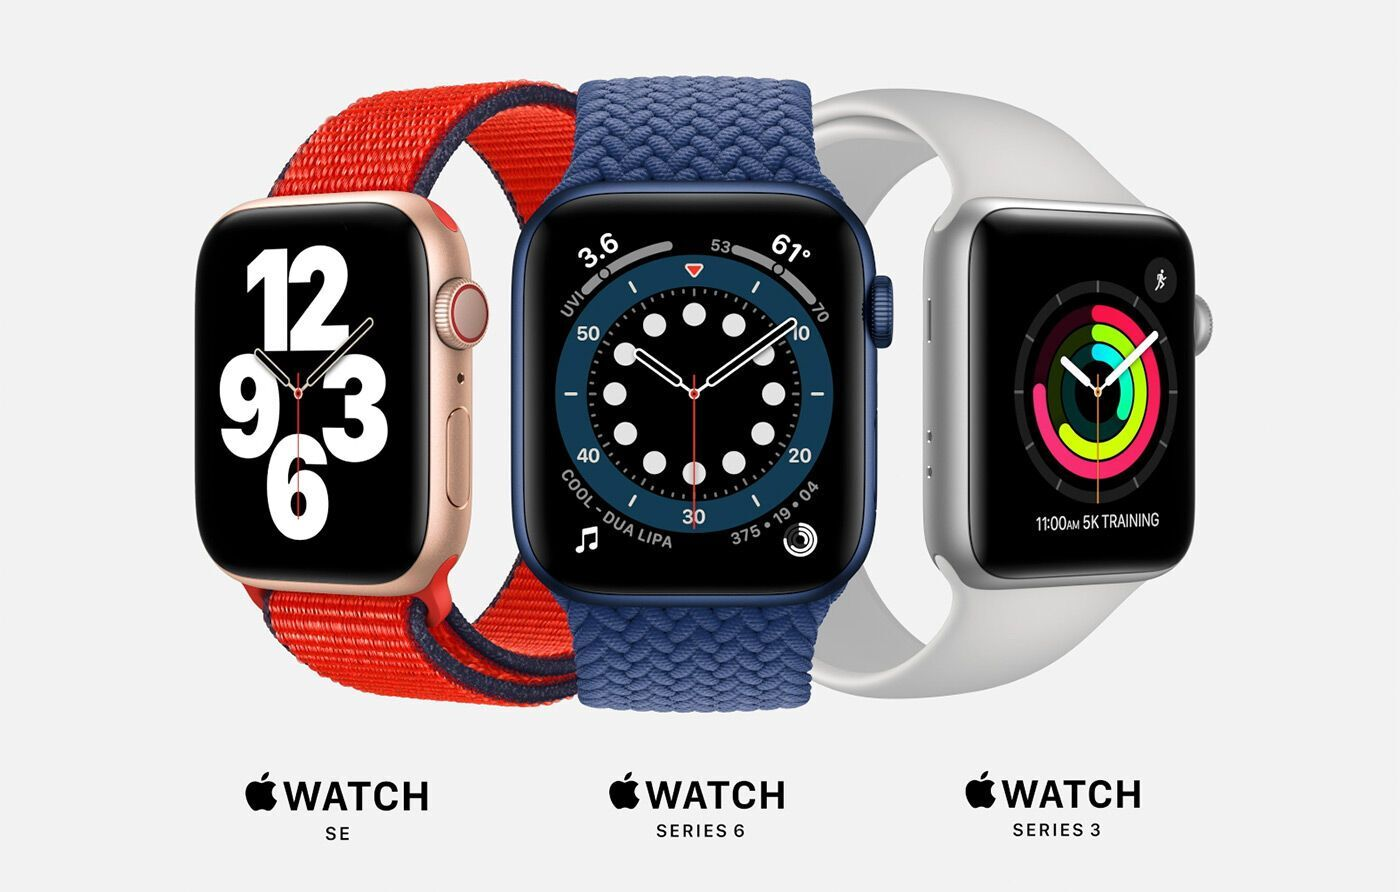 Apple Watch SE, Apple Watch Series 6, Apple Watch Series 3